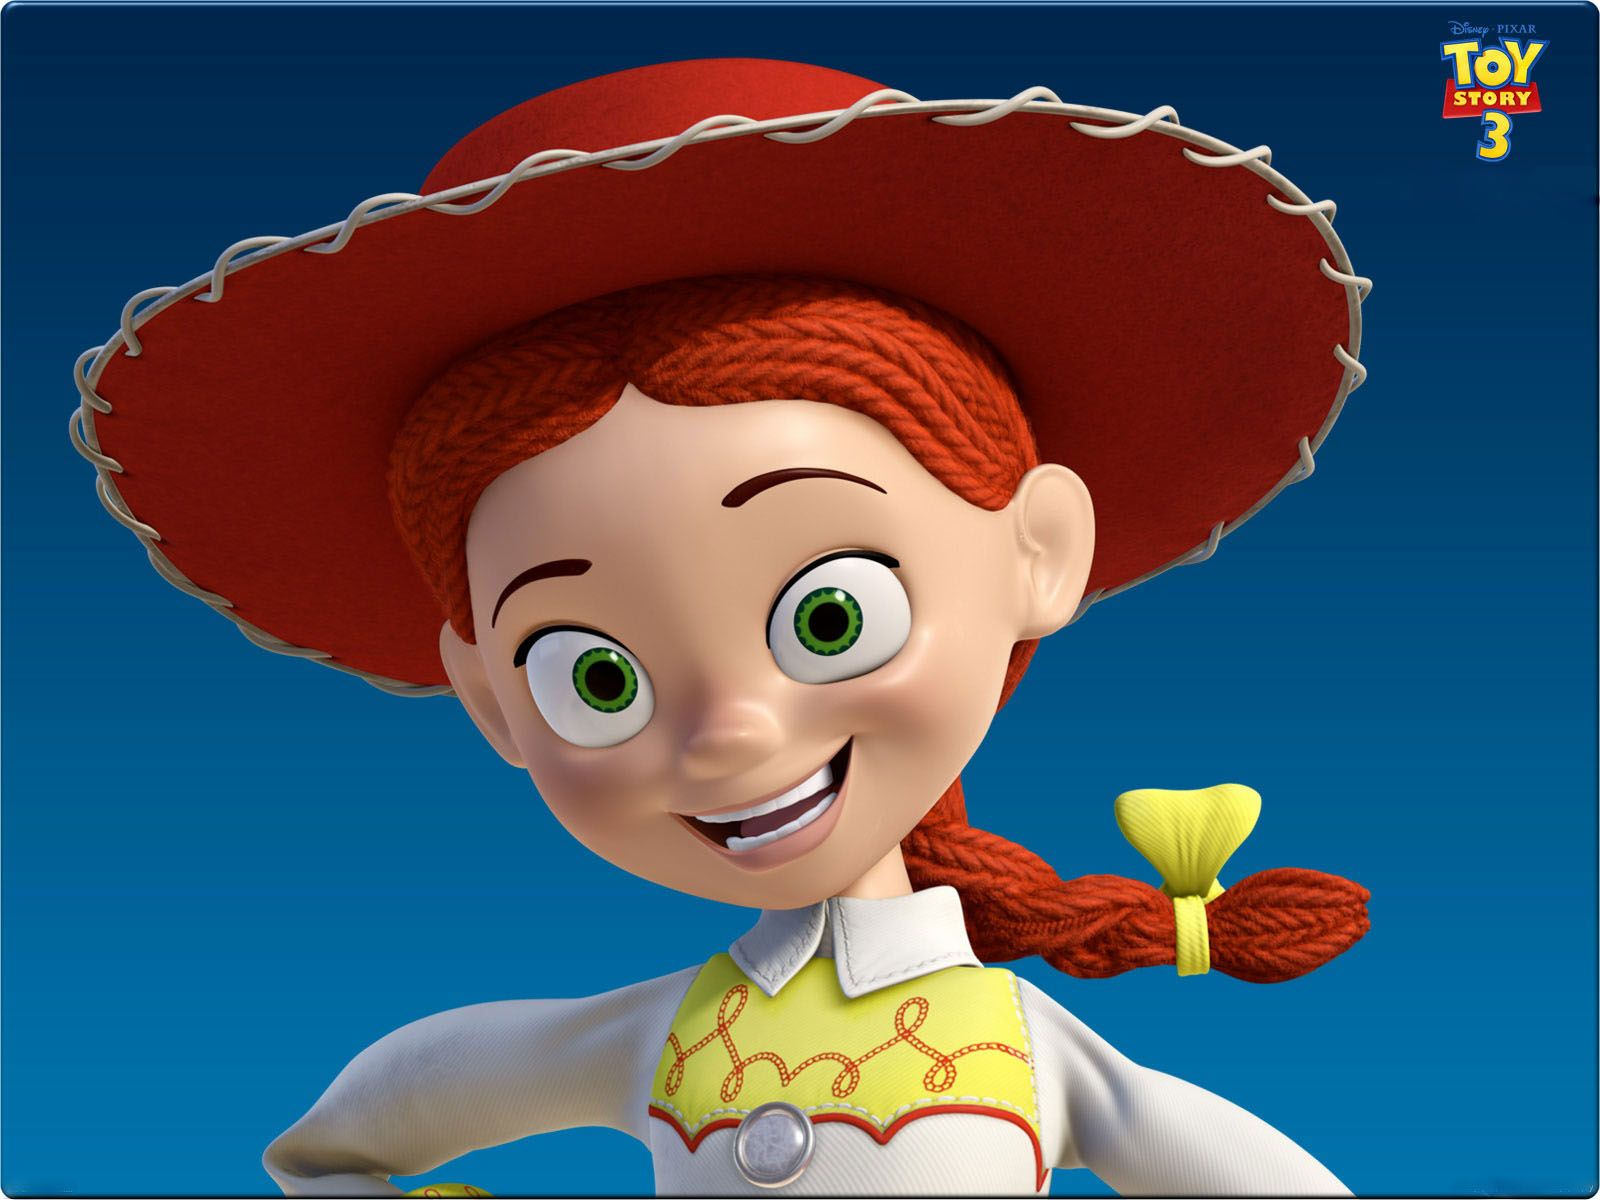 Jessie Headshot Toy Story 3 Wallpaper 1600x1200